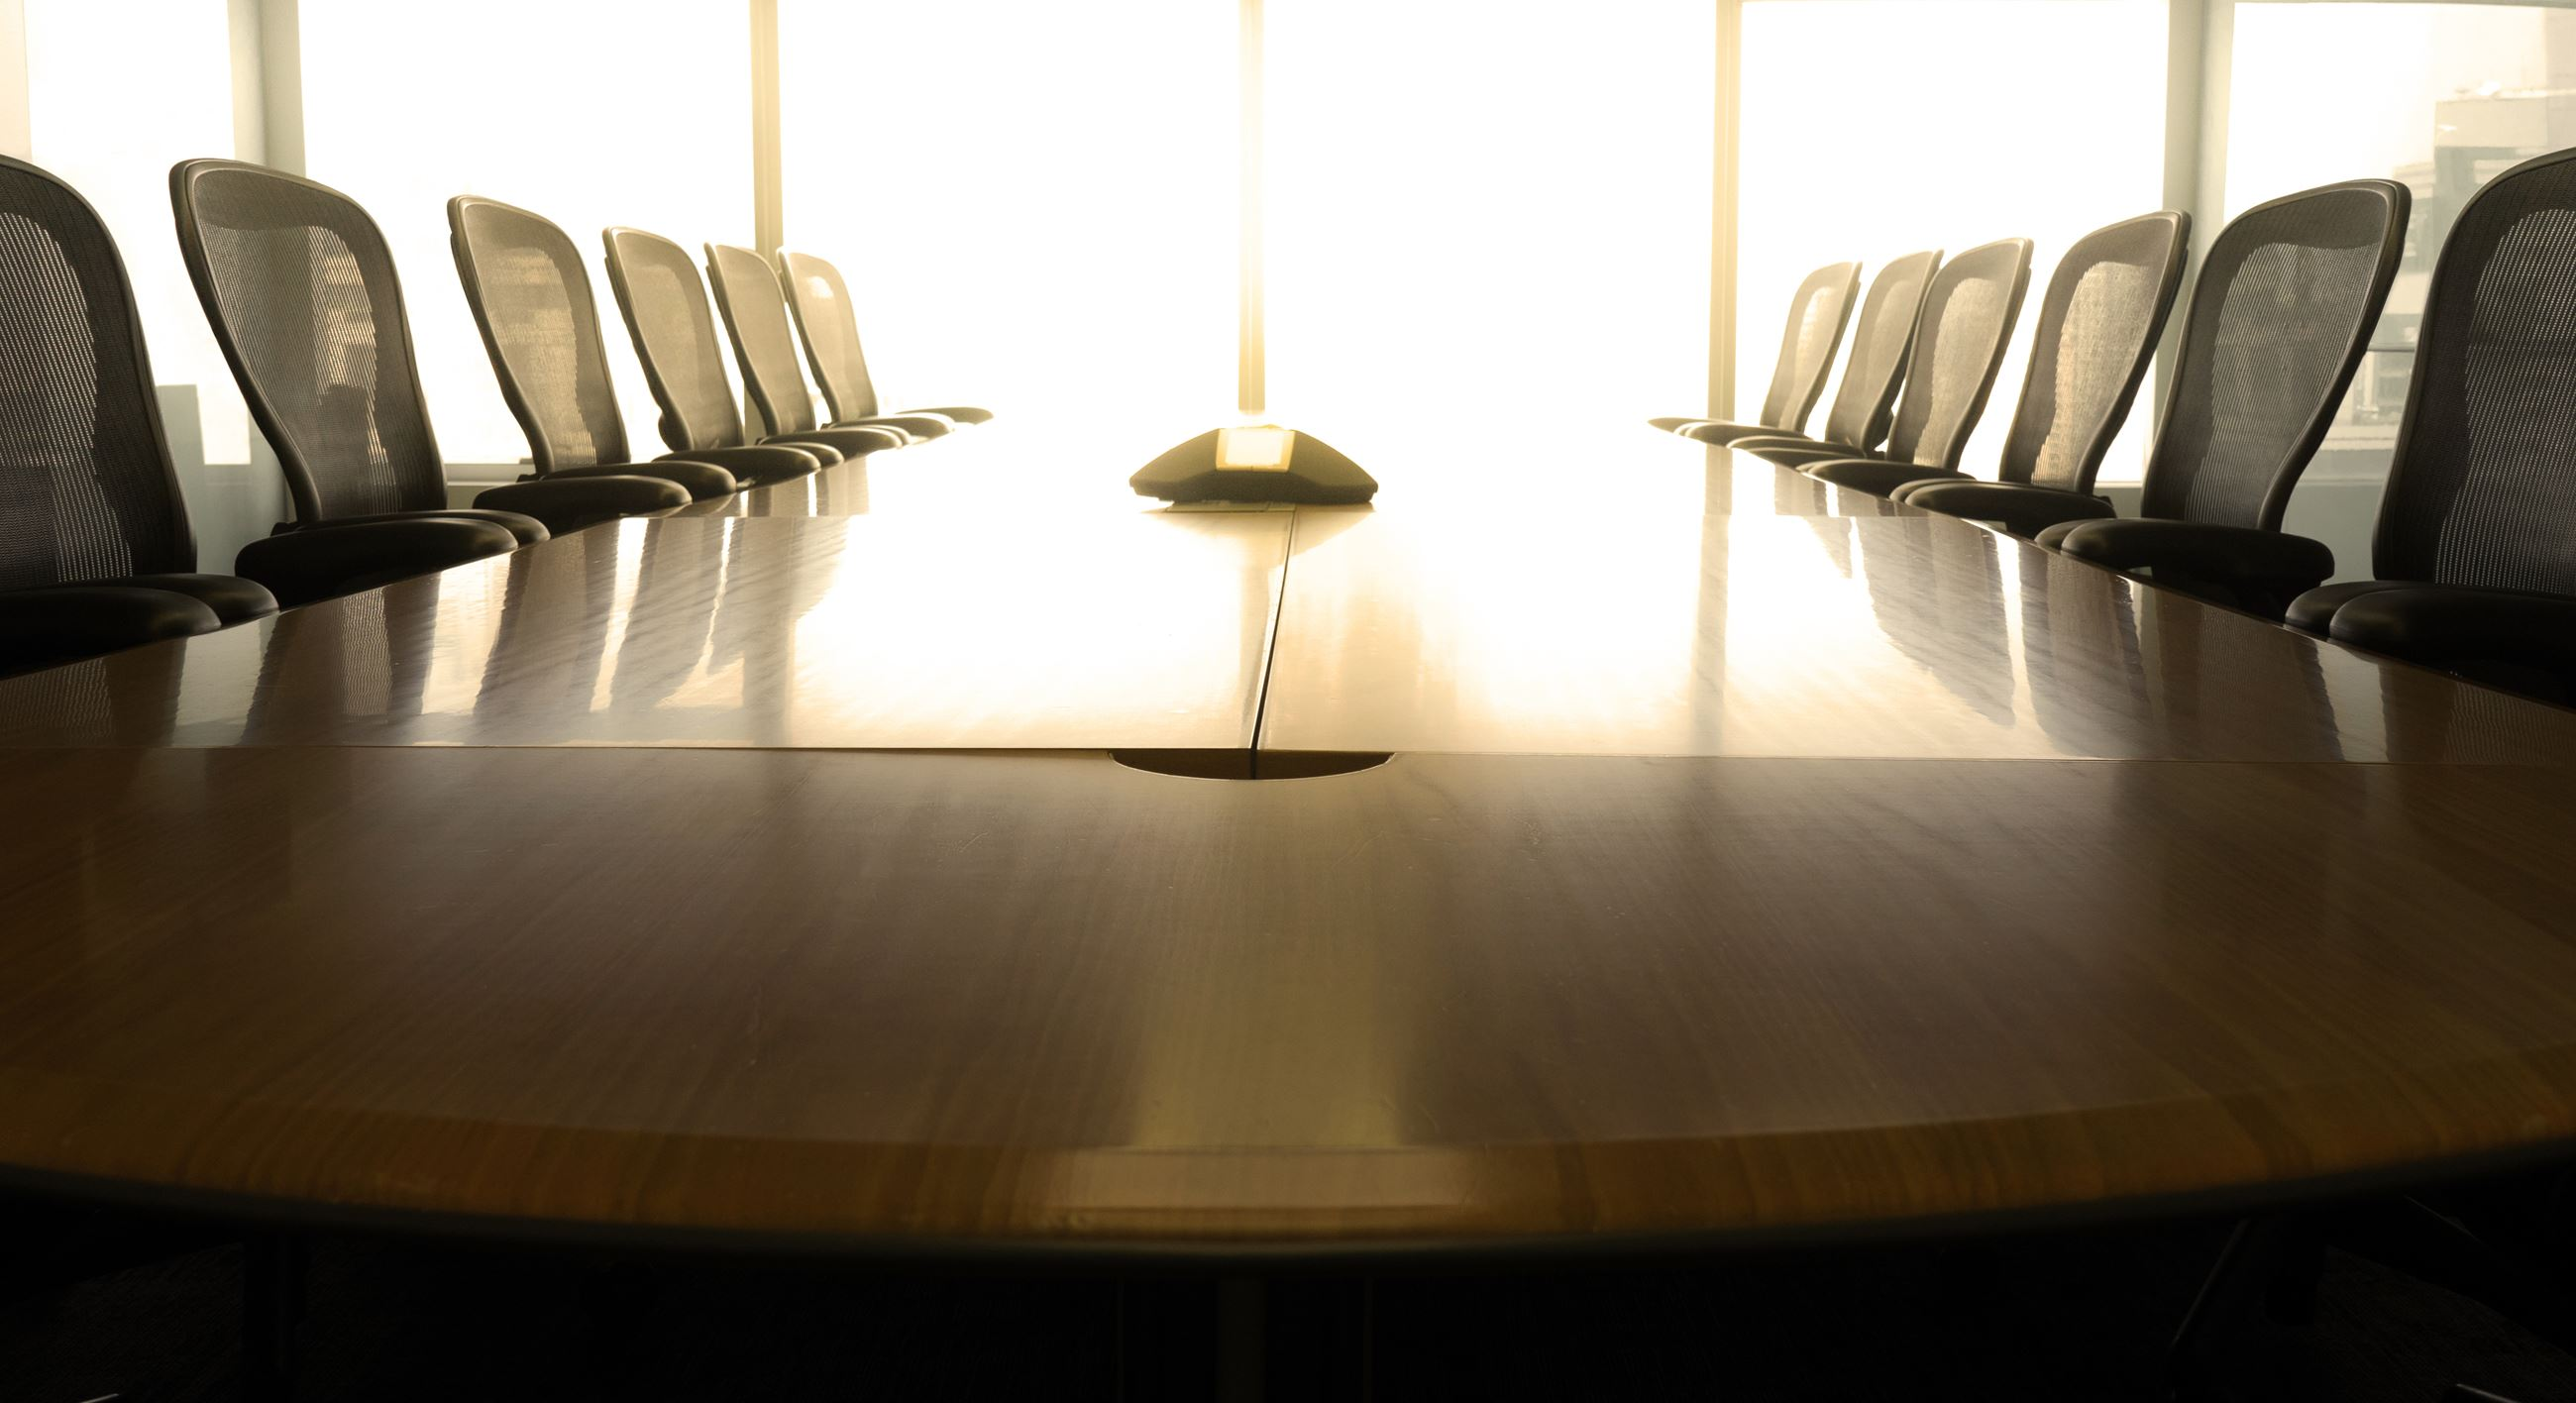 table with empty chairs